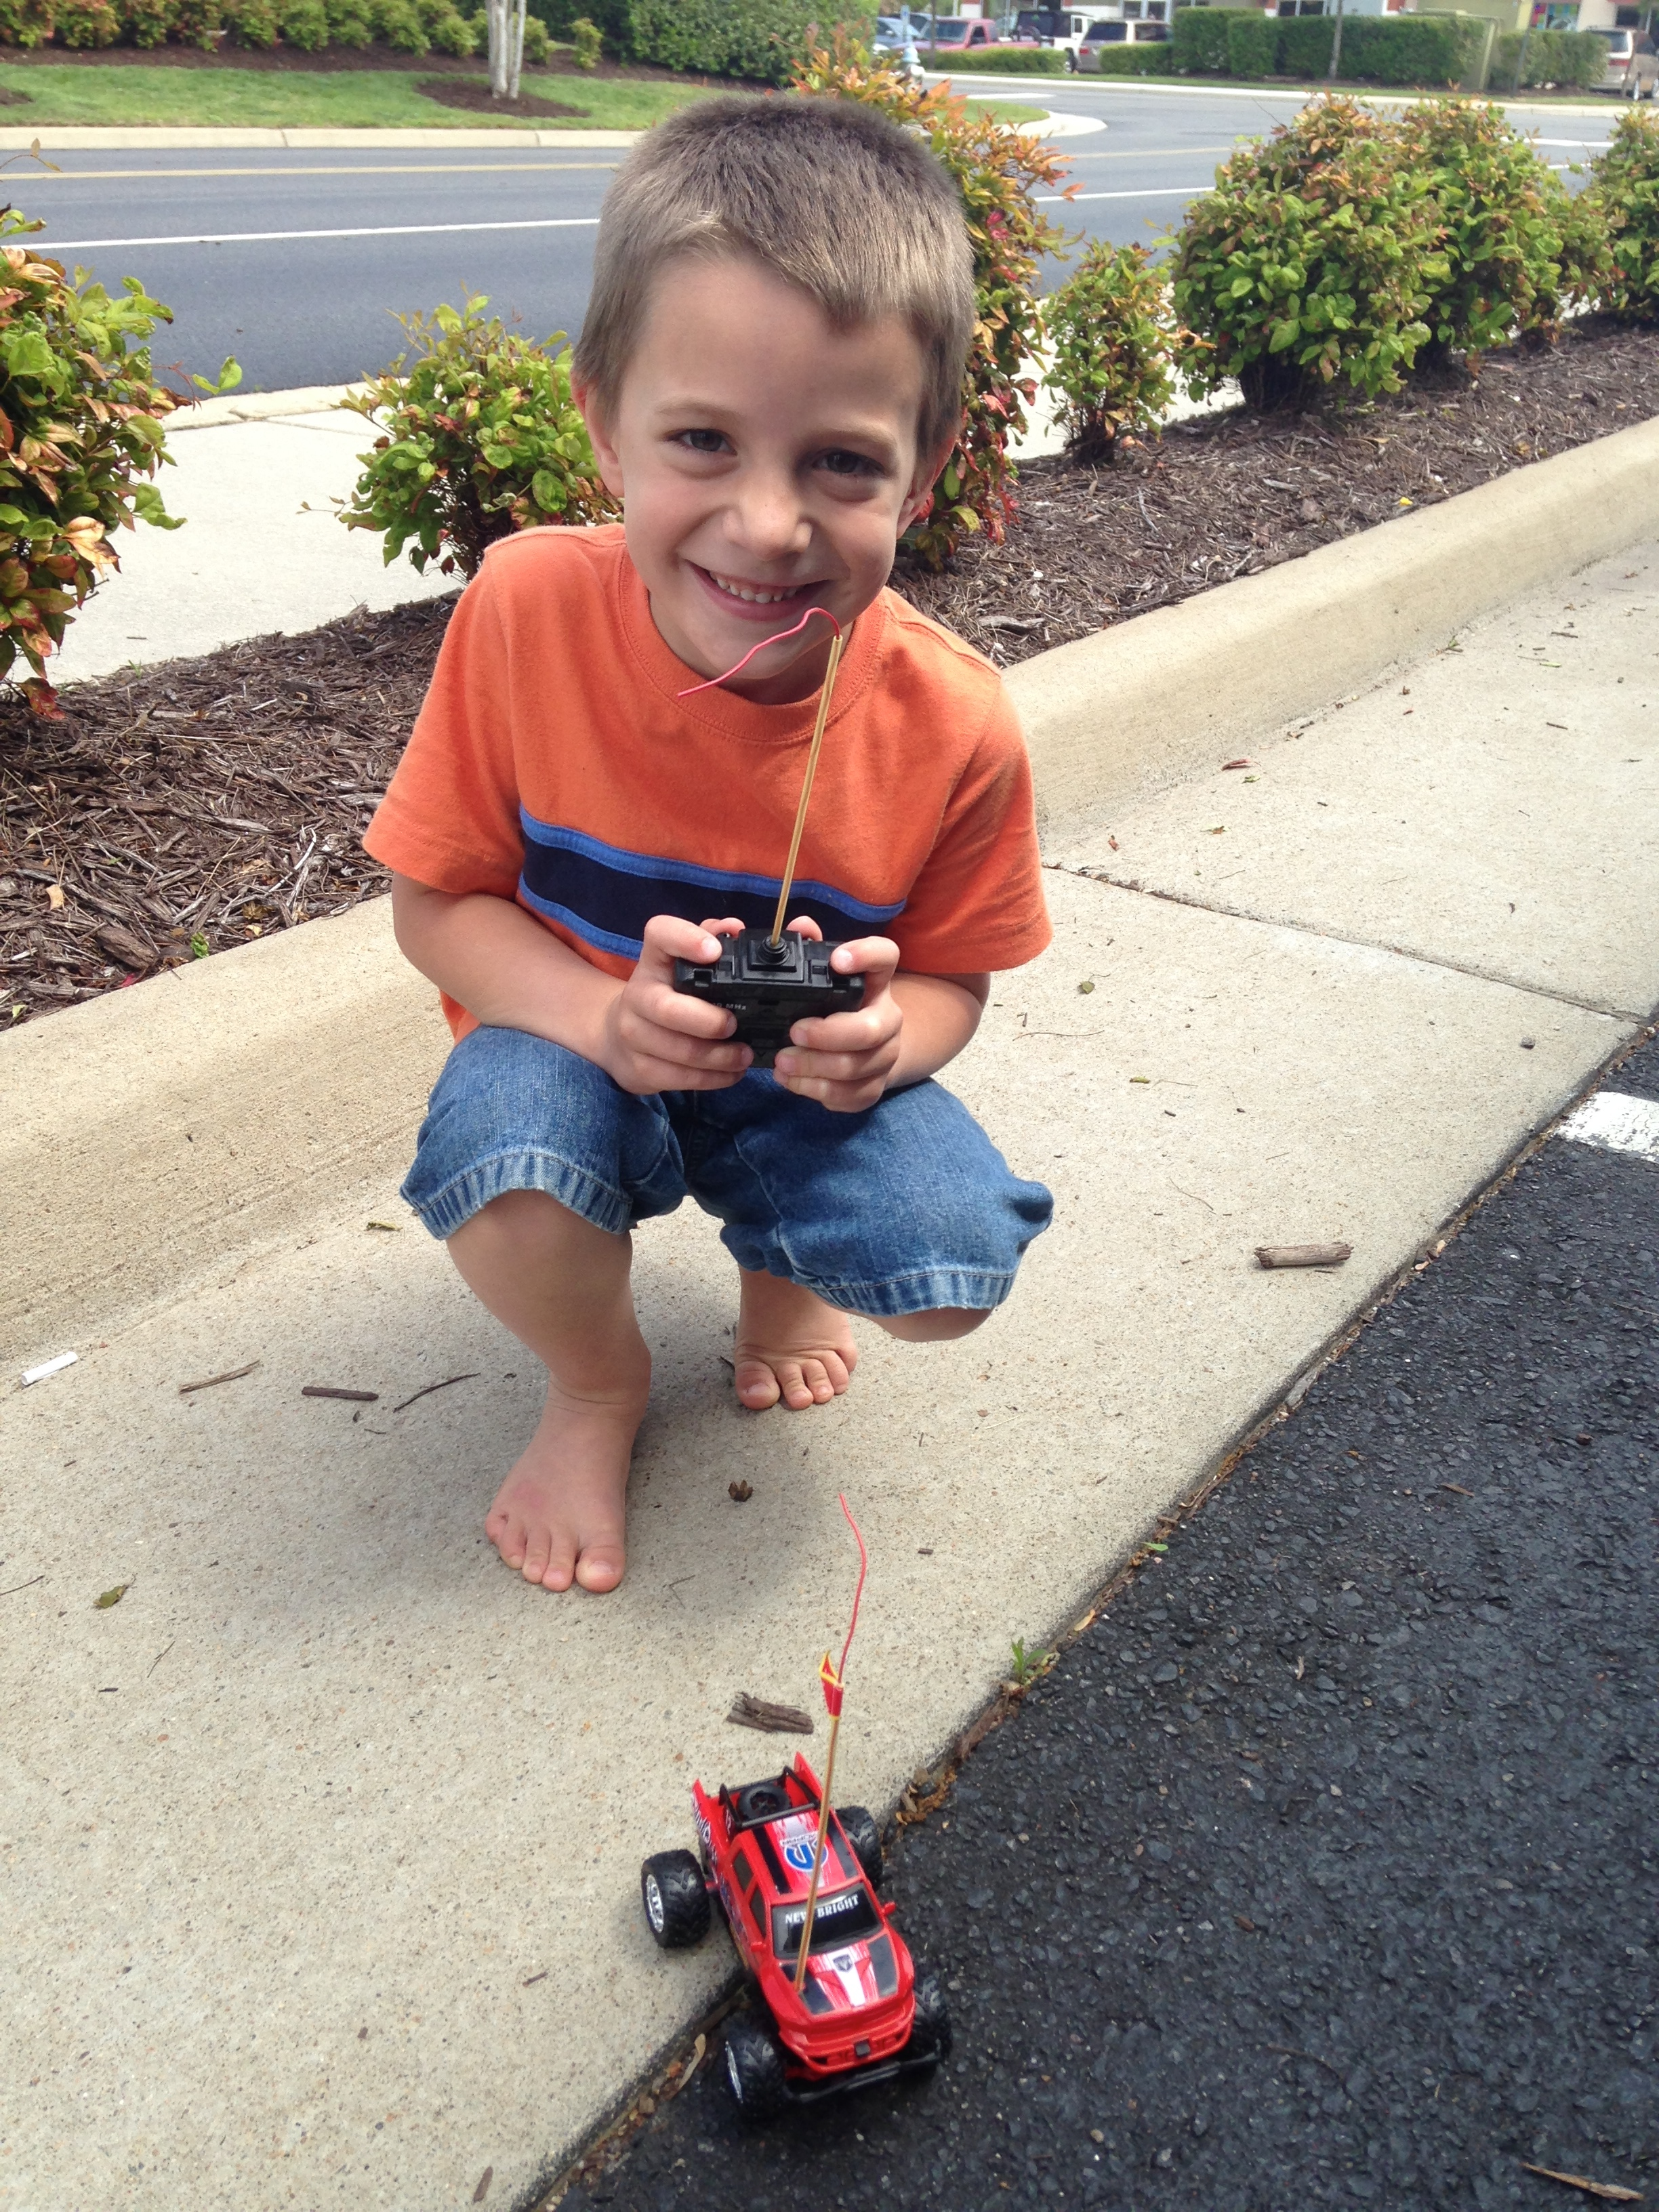 Bryant and his new remote control truck